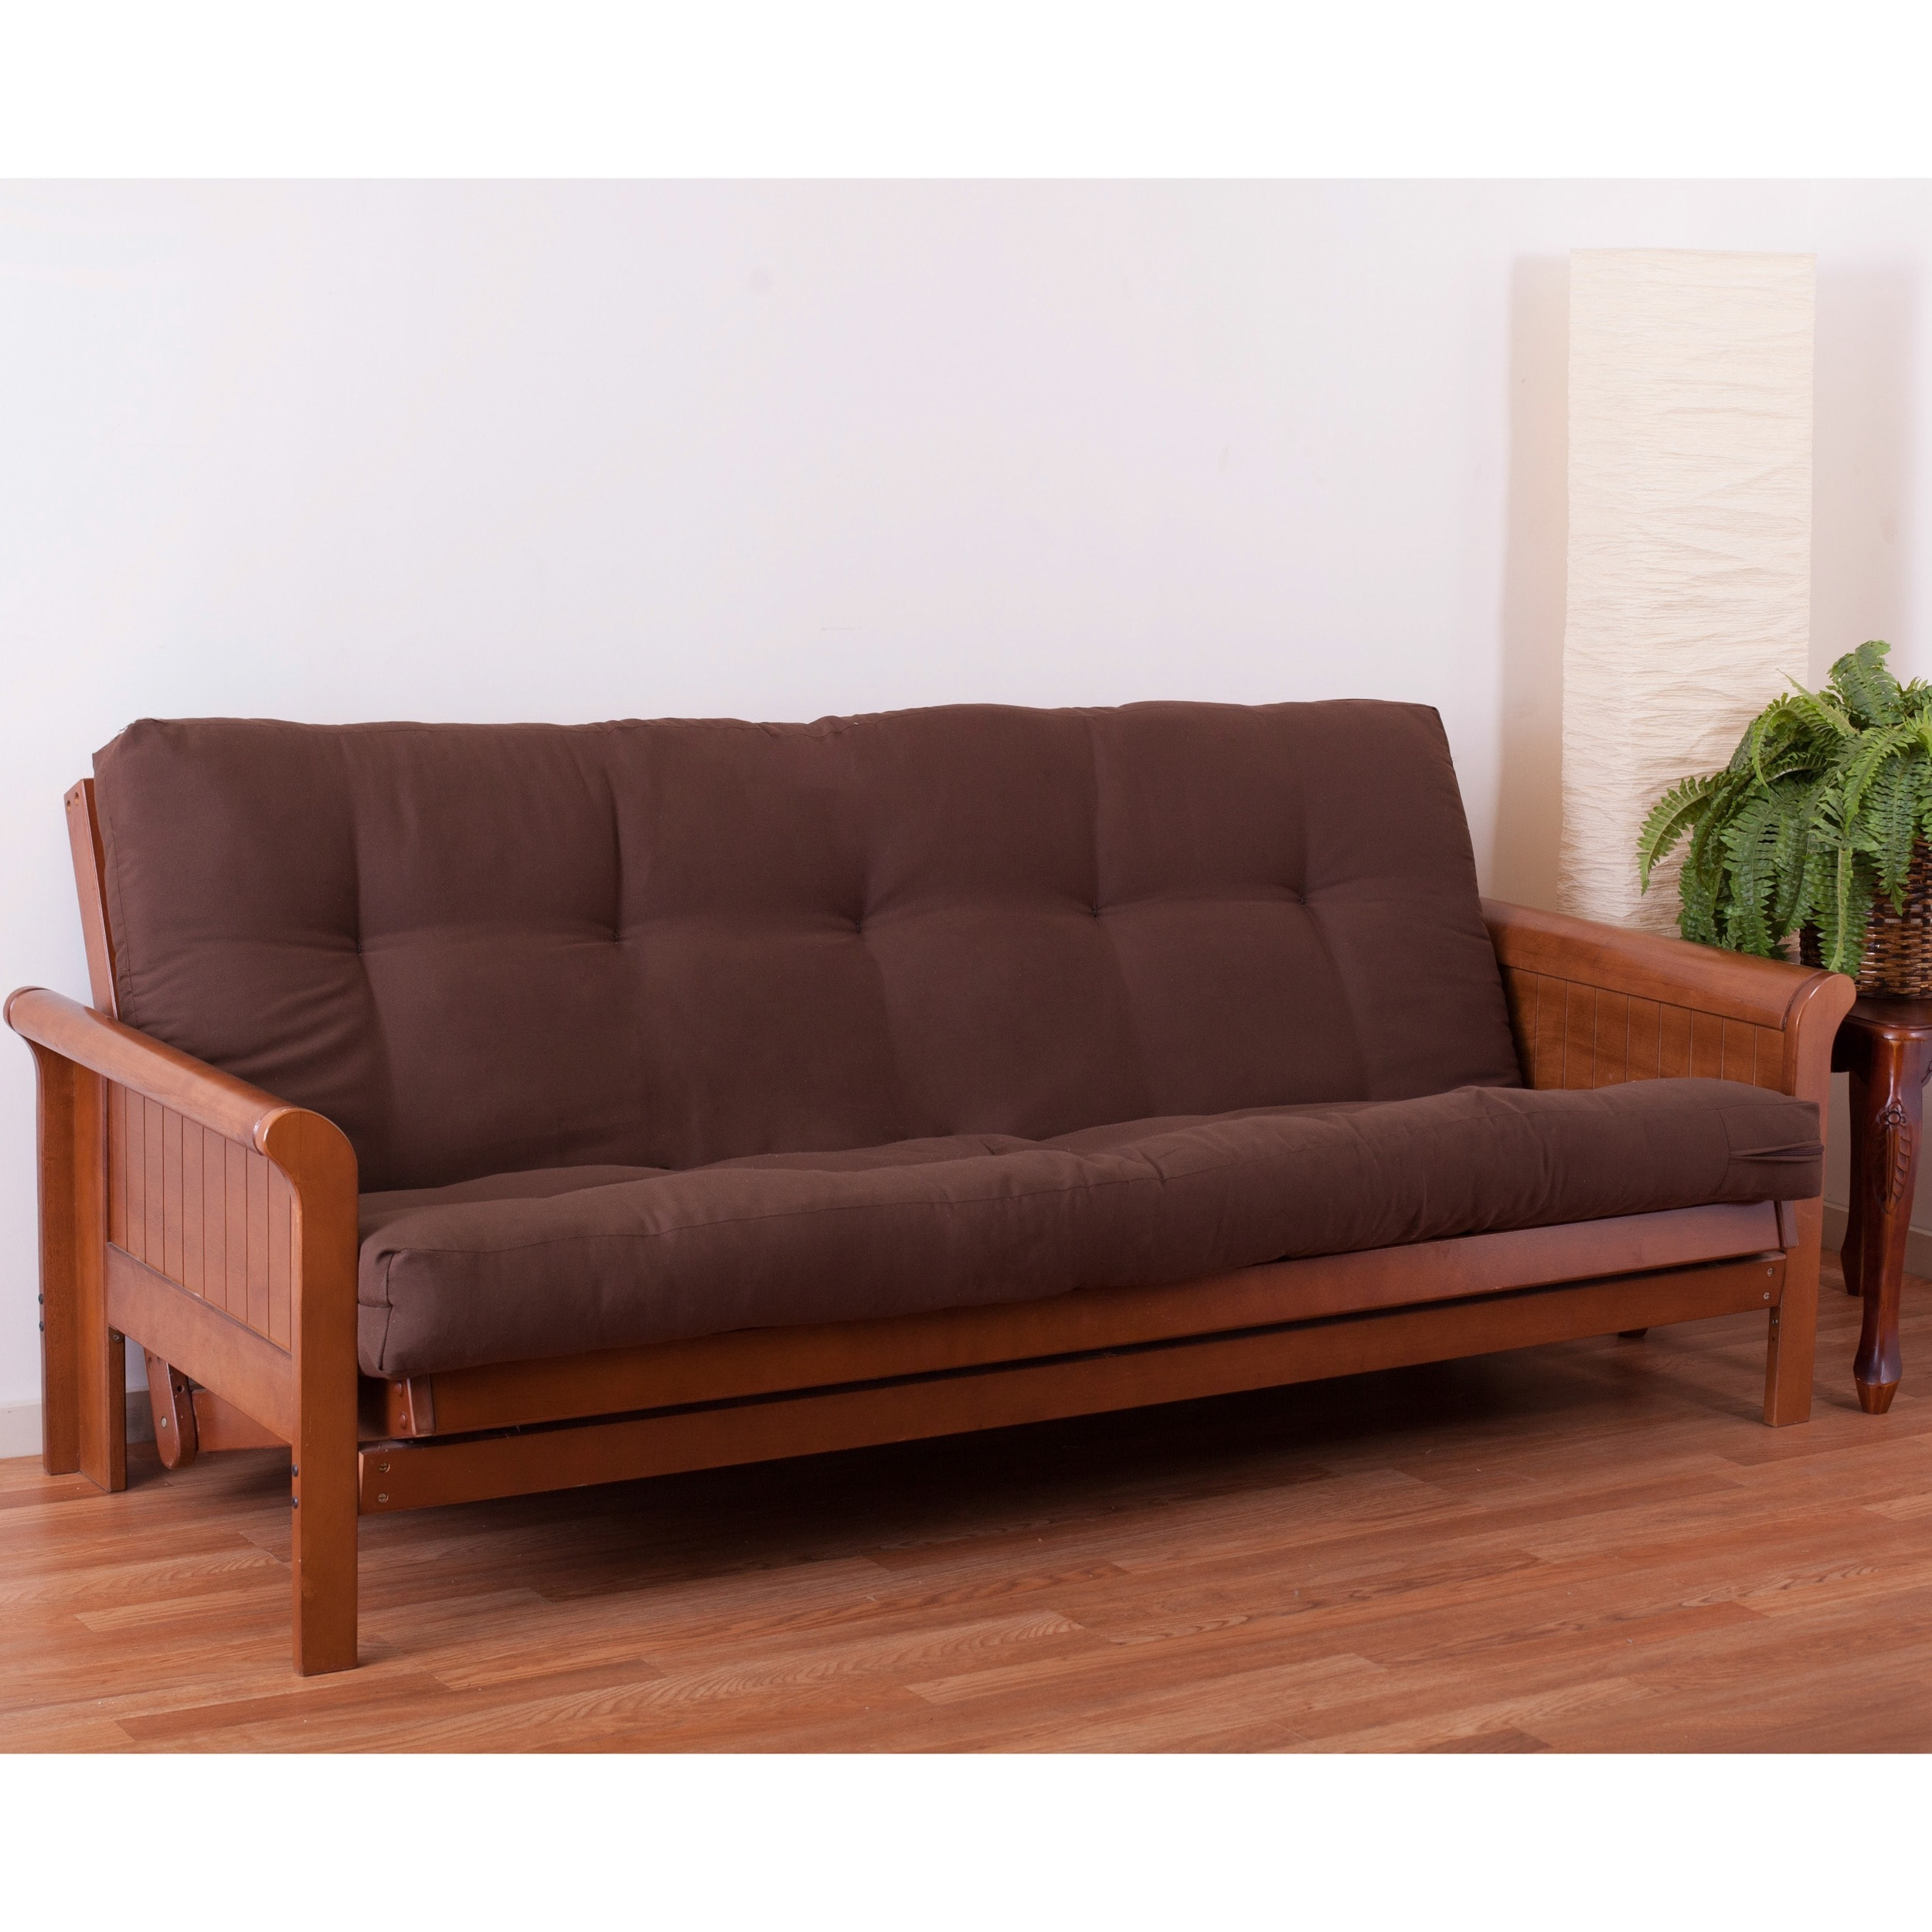 free bed innerspring product sized somette suede frame overstock phoenix and size futons queen shipping sofa garden today futon mattress home with hardwood